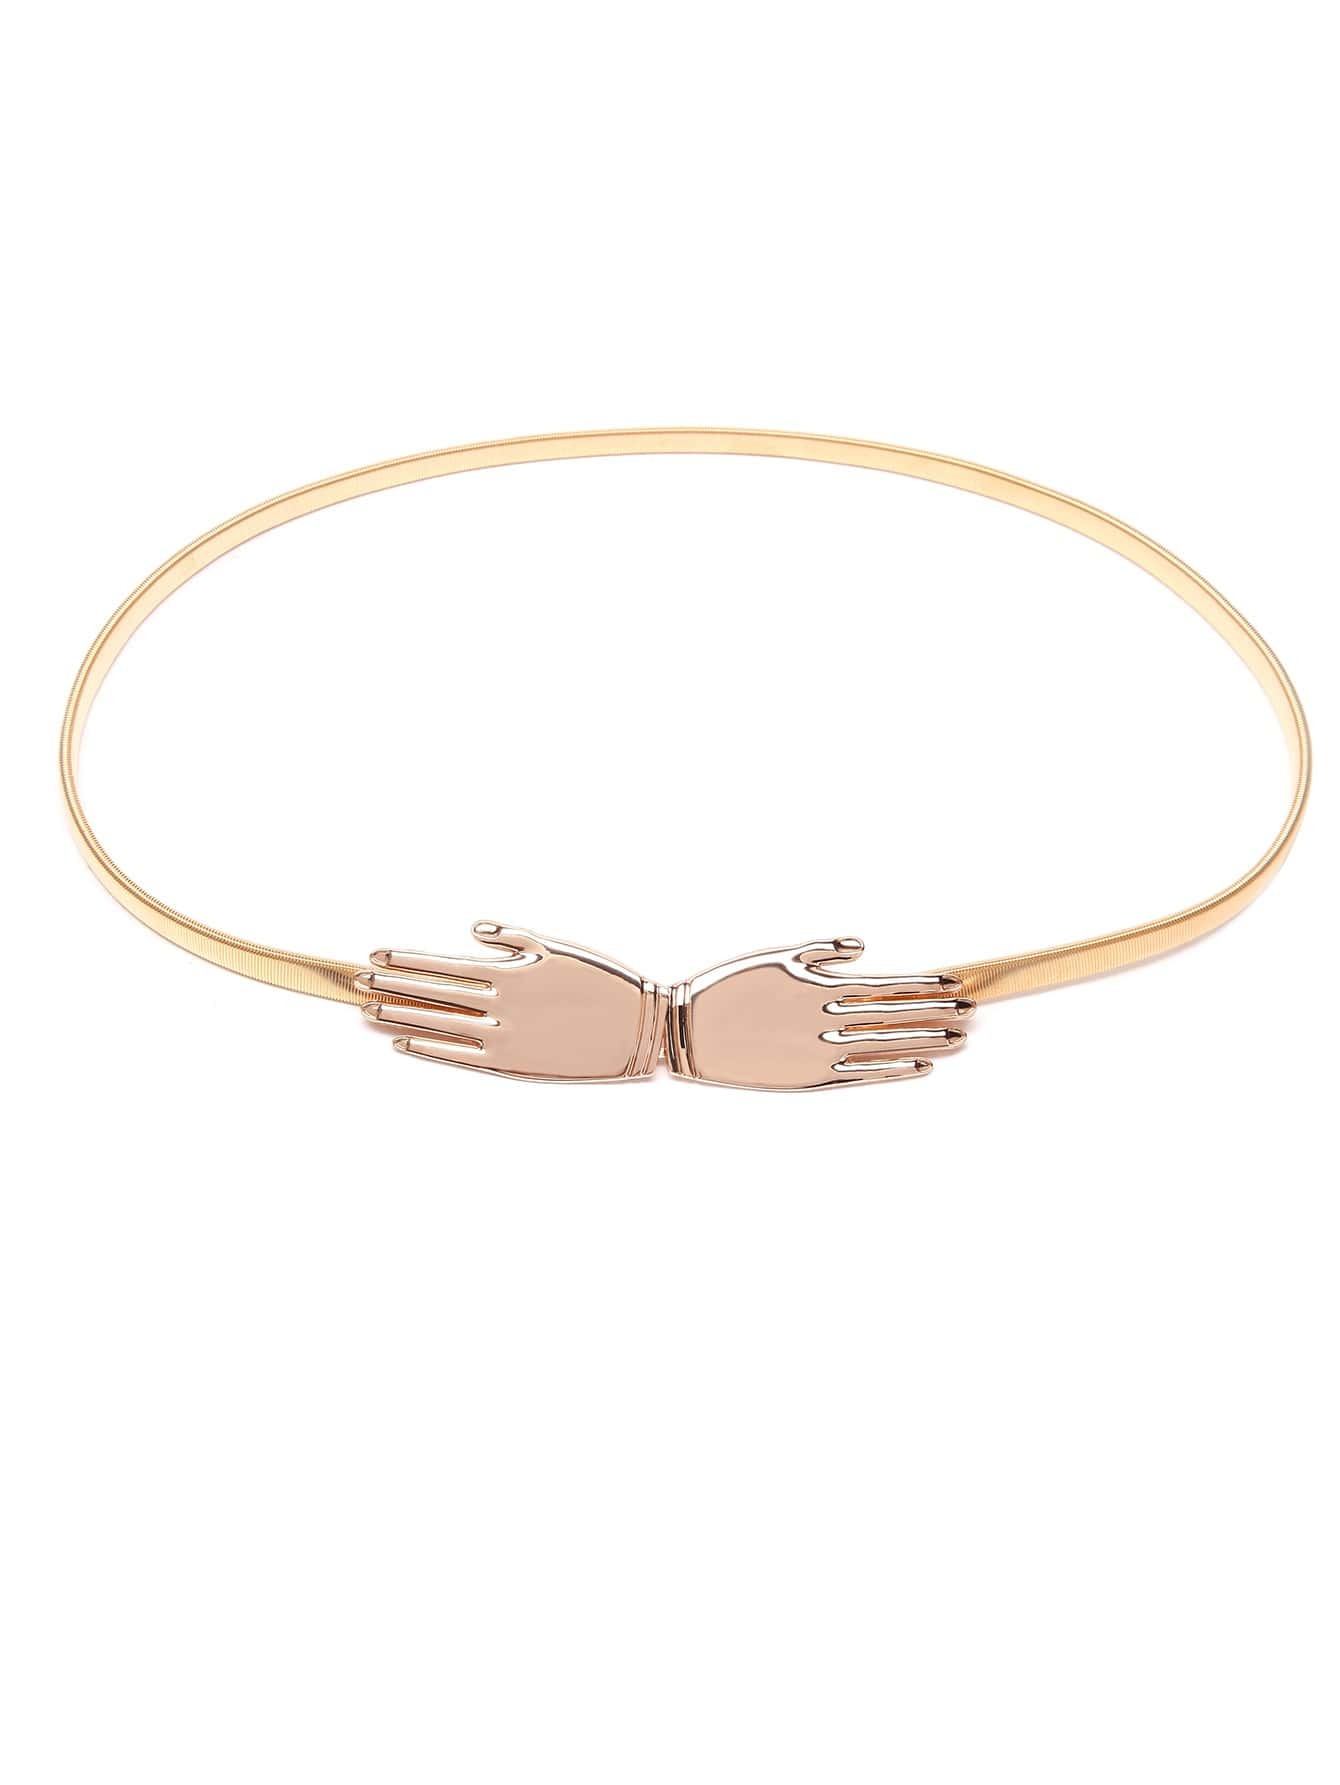 Hand Buckle Golden Metal Slim Elastic BeltHand Buckle Golden Metal Slim Elastic Belt<br><br>color: Gold<br>size: None